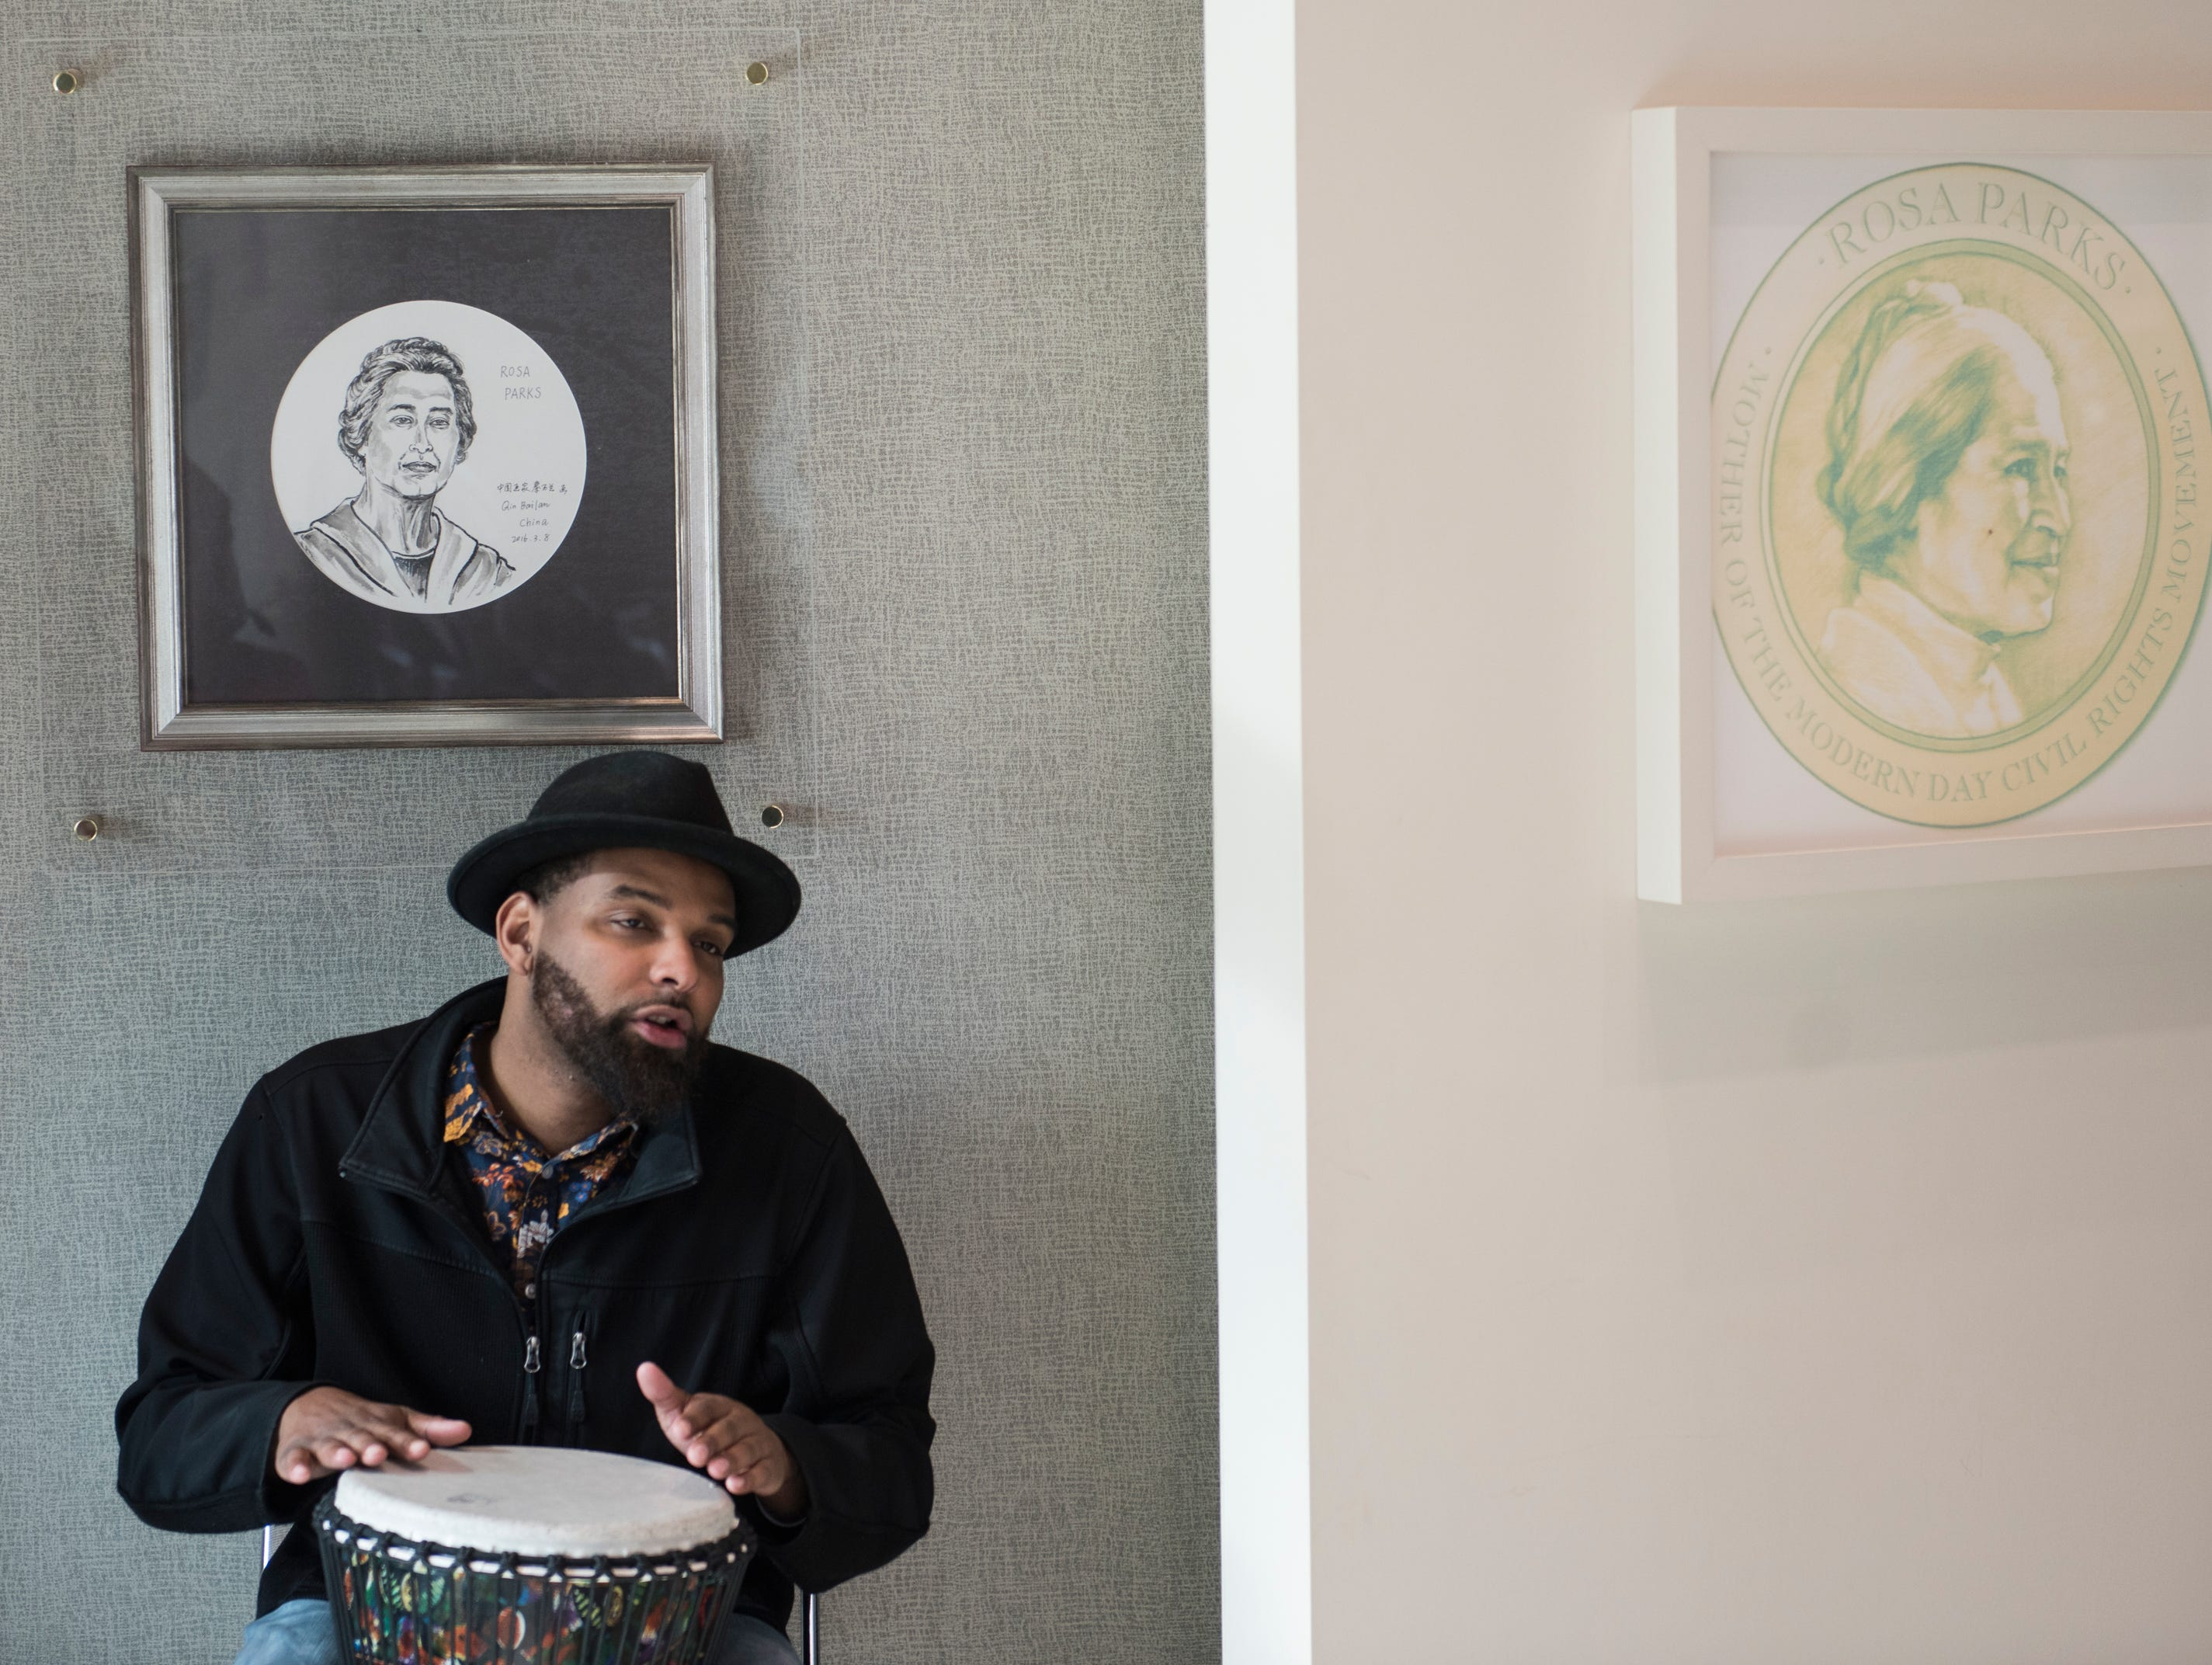 Duron Hale plays music during Rosa Parks' birthday celebration at the Rosa Parks Museum in Montgomery, Ala., on Monday, Feb. 4, 2019.